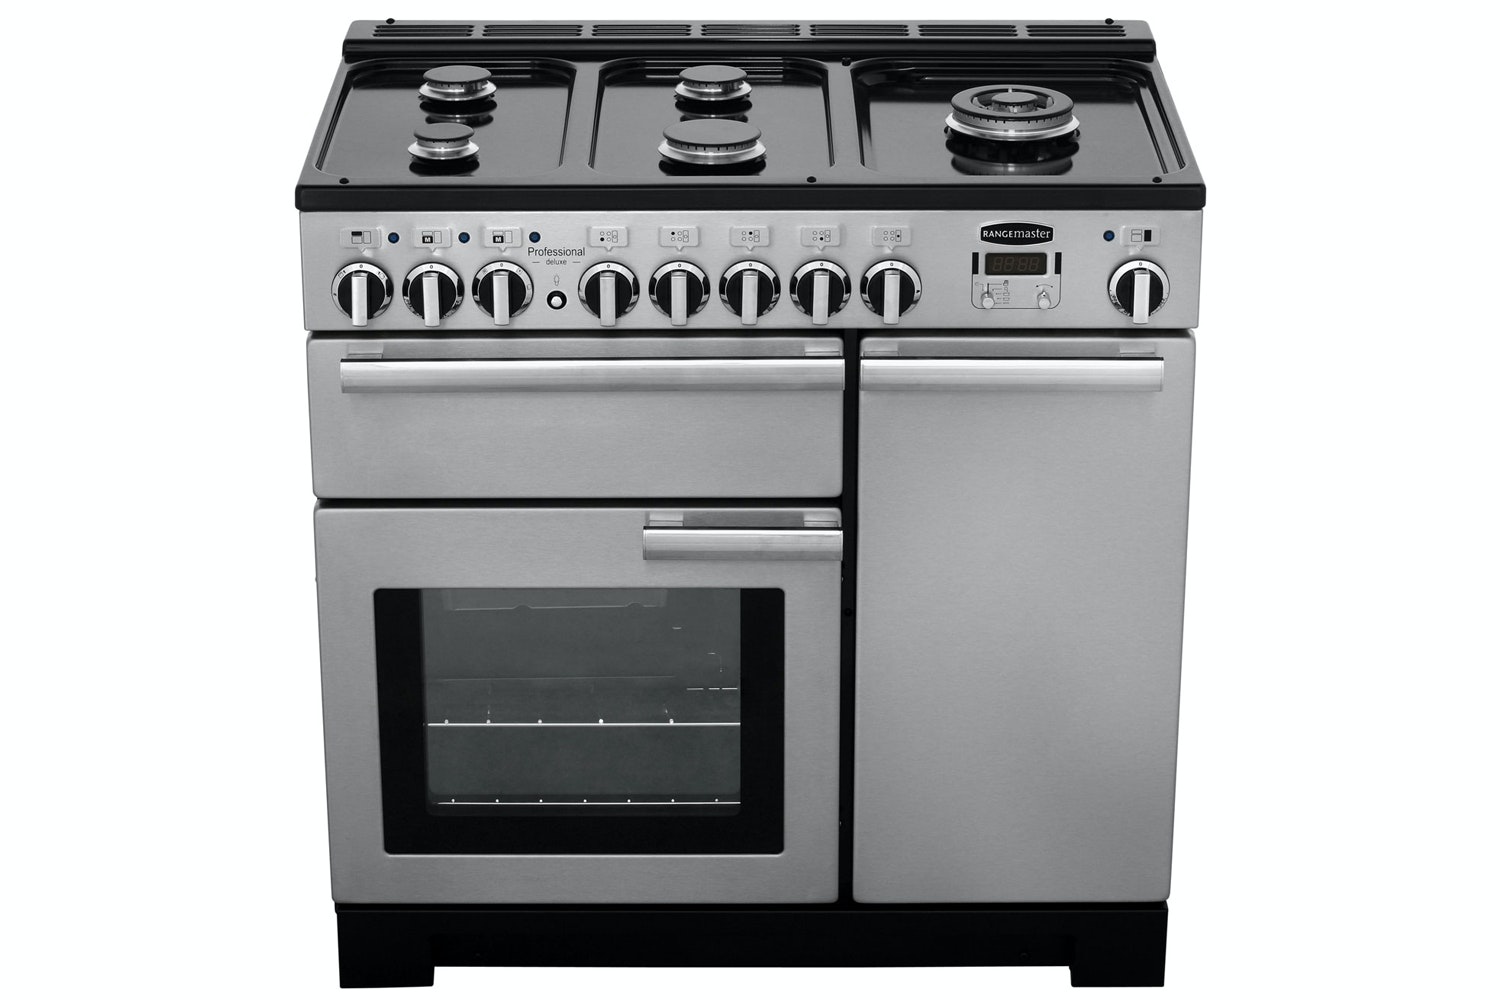 Rangemaster Professional Deluxe 90cm Dual Fuel Range Cooker | PDL90DFFSS/C | Stainless Steel